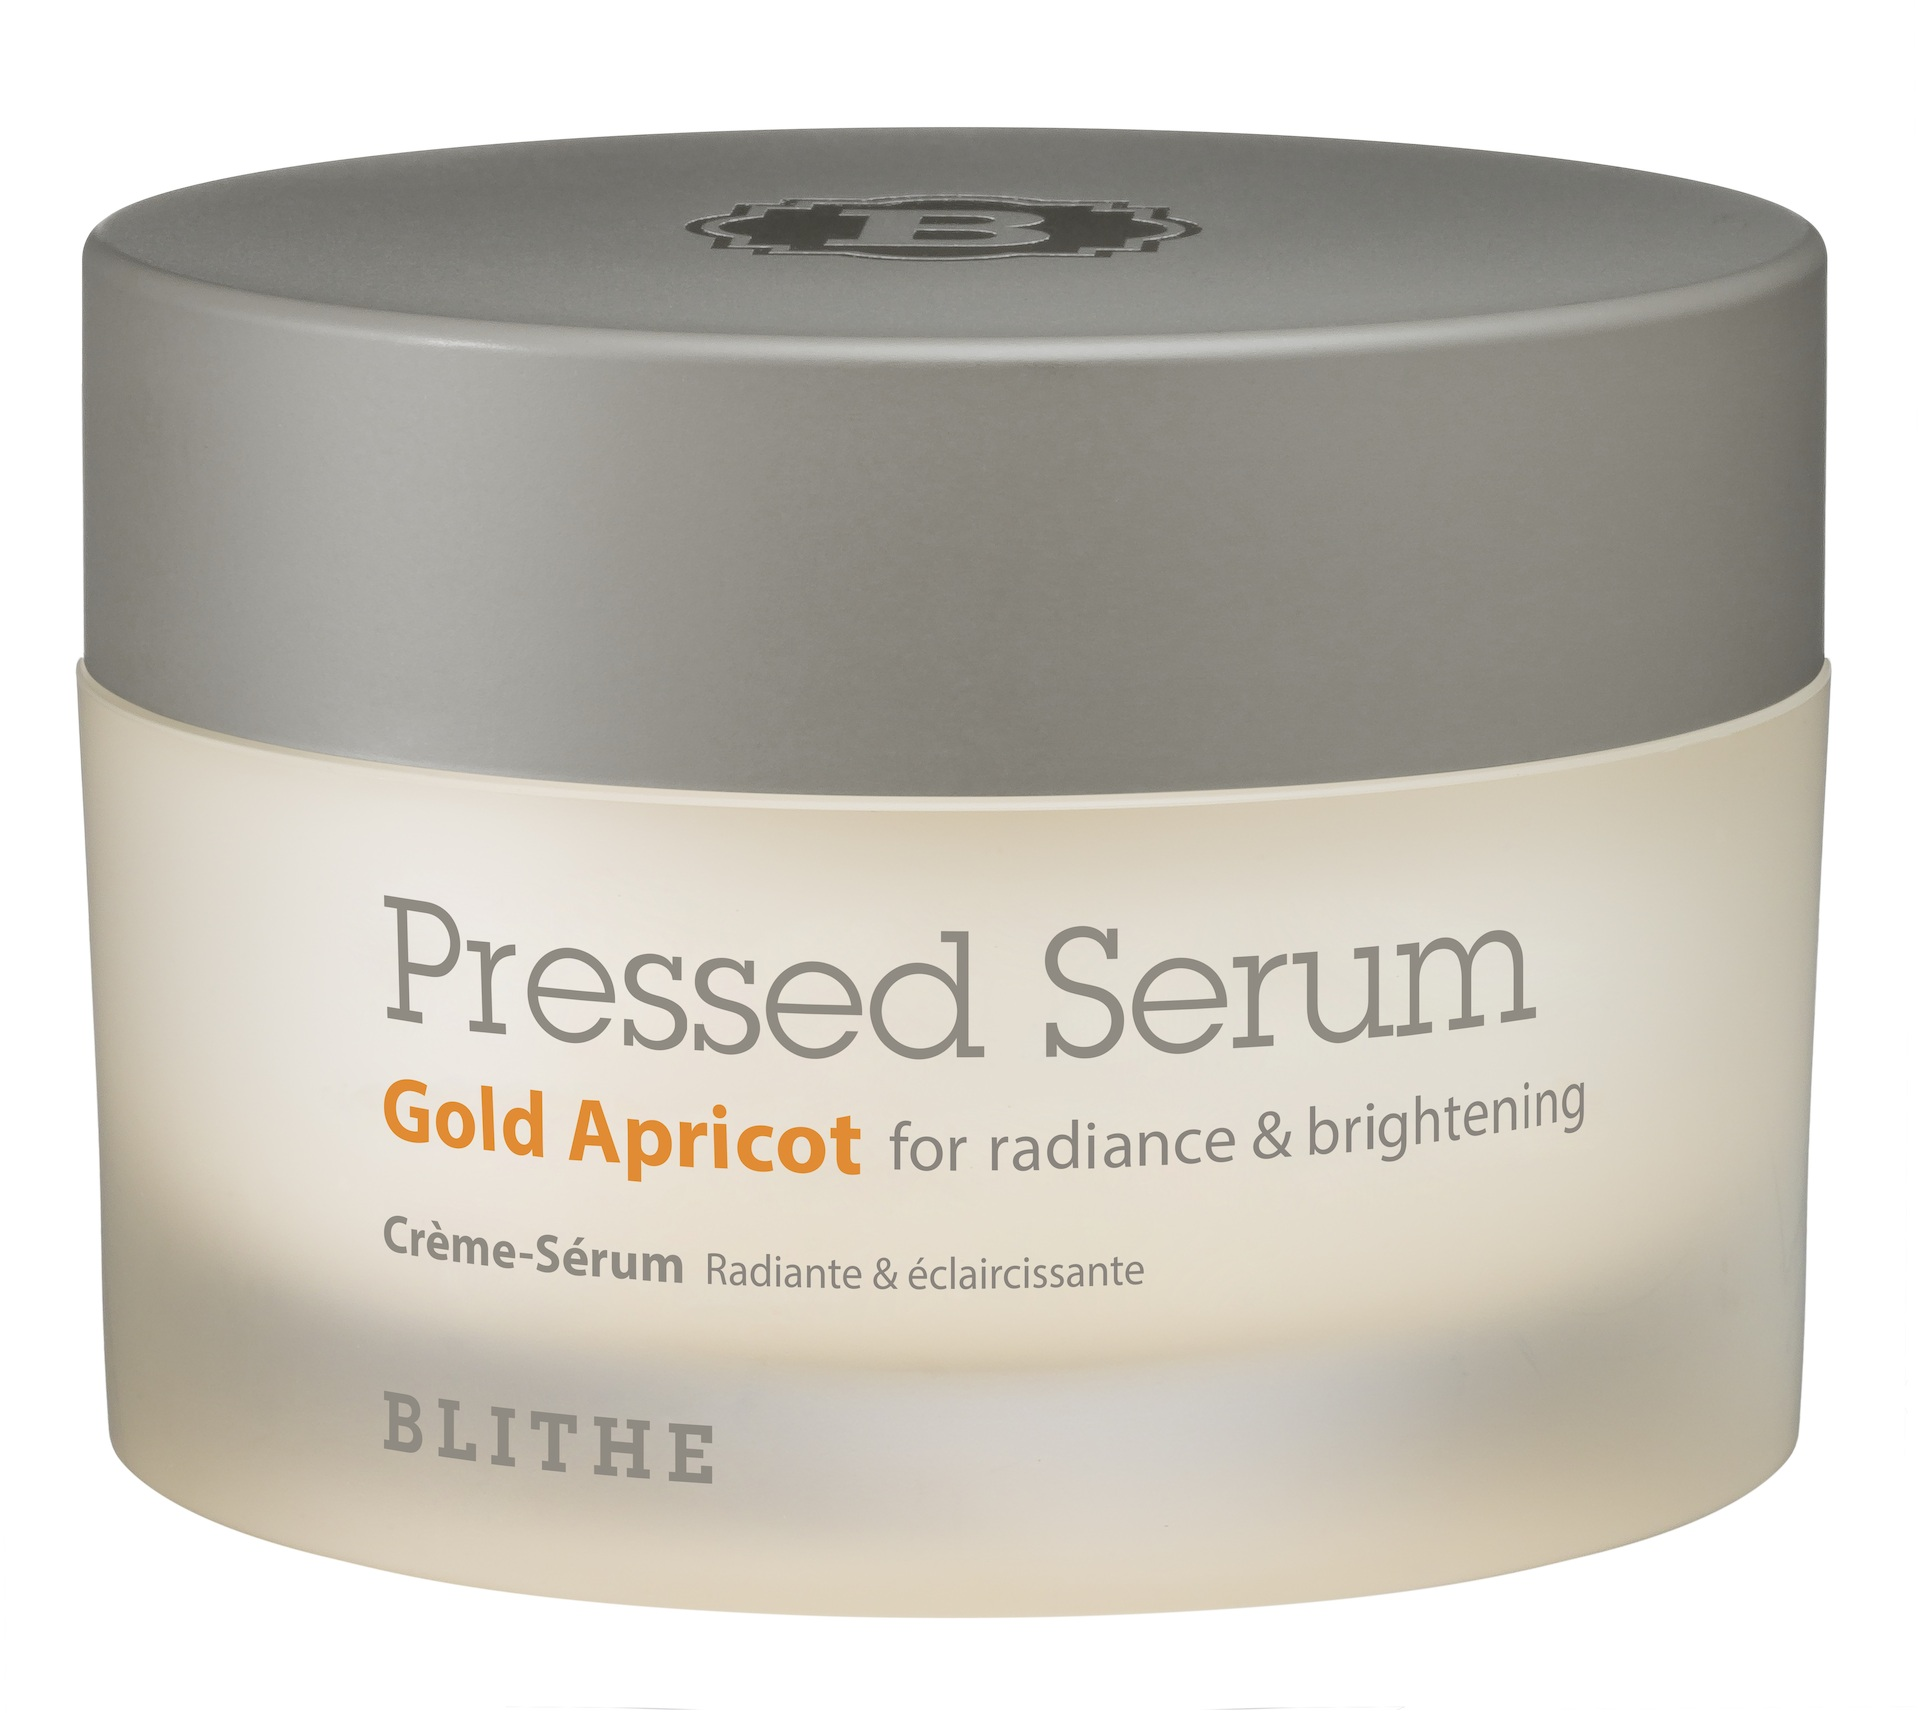 Gold Apricot Pressed Serum